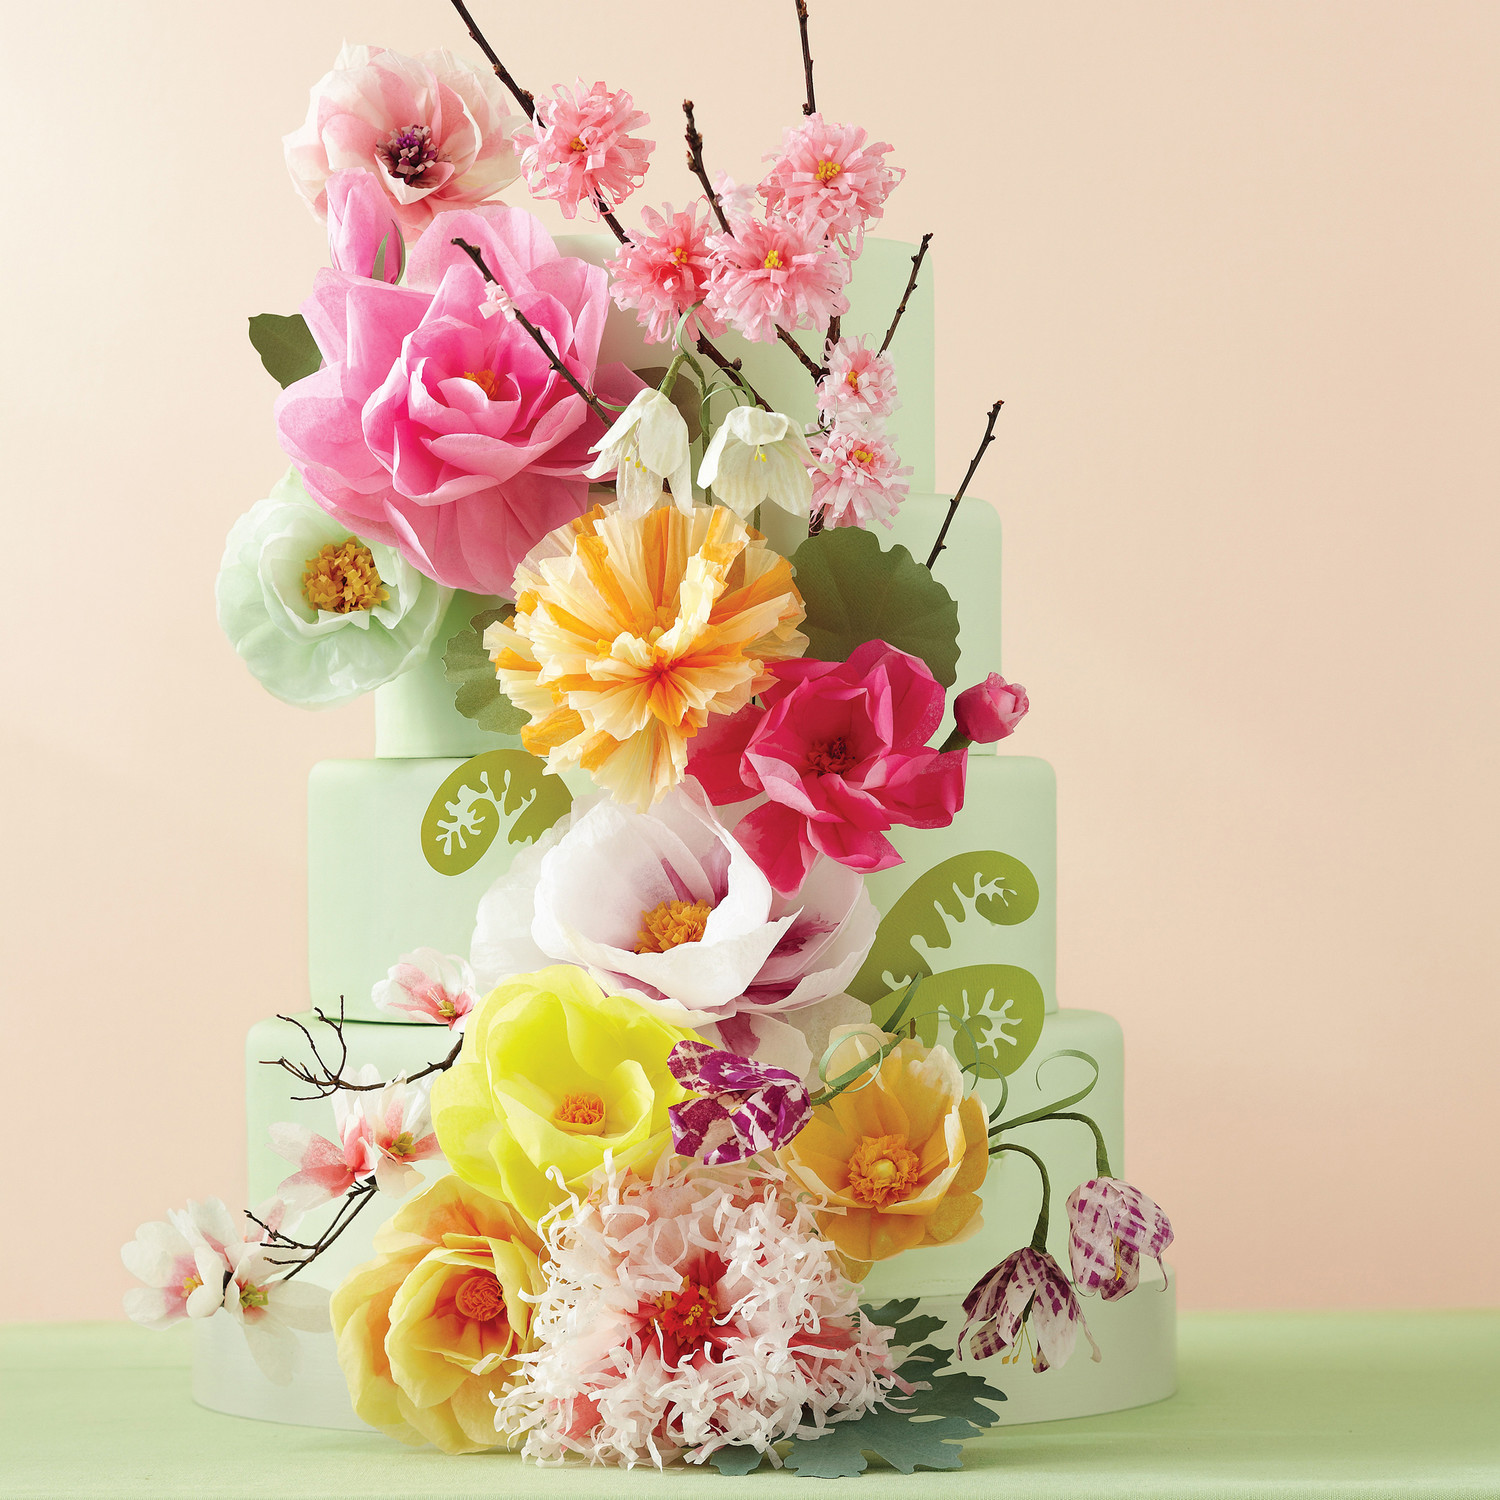 11 diy wedding cake ideas that will transform your tiers martha 11 diy wedding cake ideas that will transform your tiers martha stewart weddings junglespirit Gallery